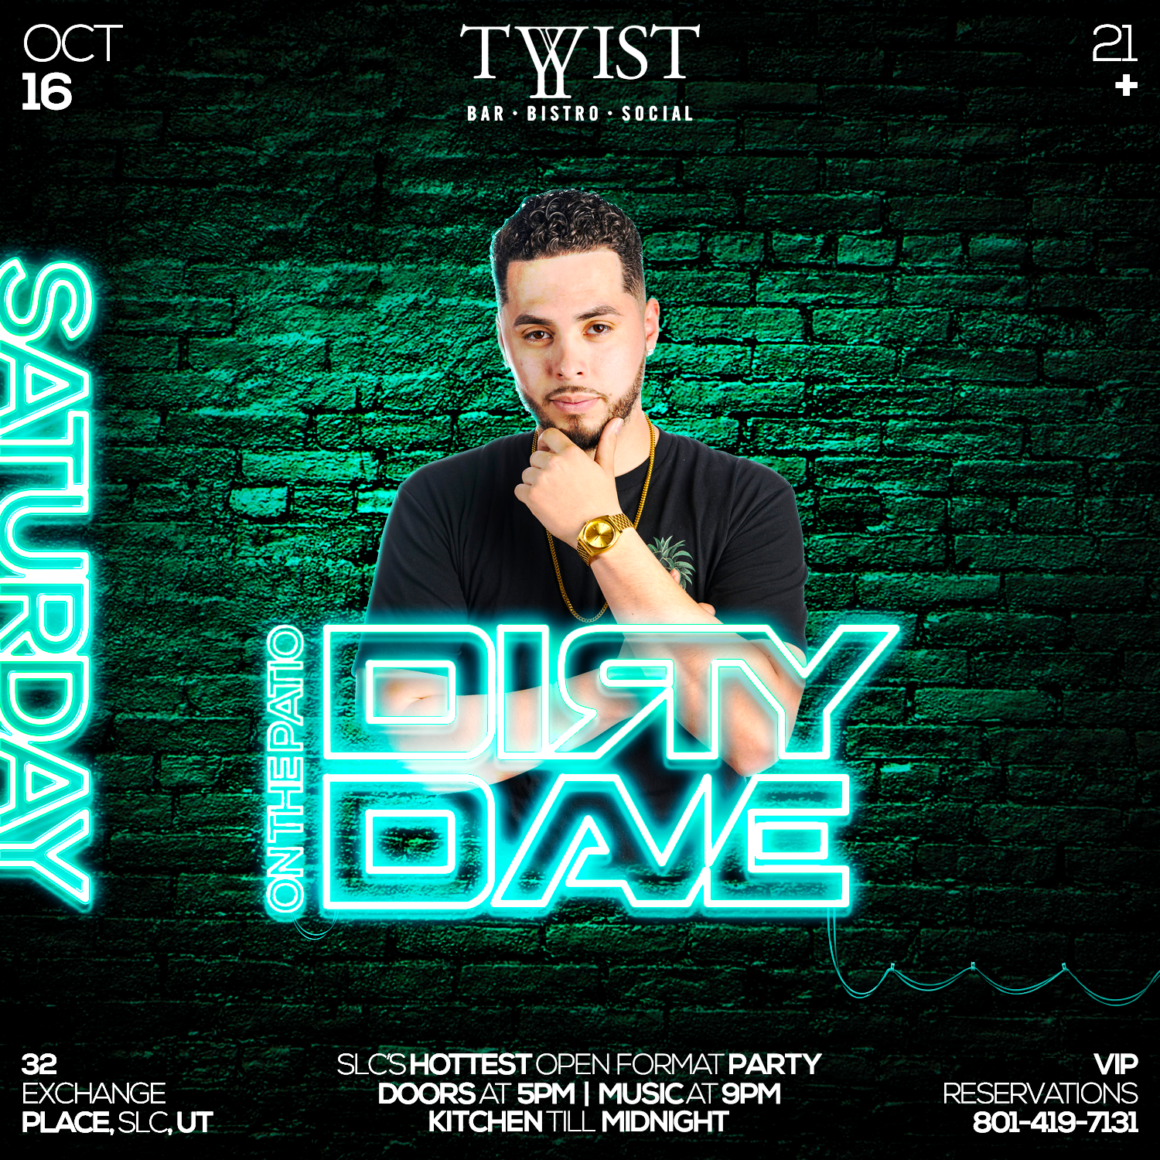 Event flyer for weekly Saturday night held at Twist Bar & Bistro every Saturday on 32 Exchance Place in Downtown Salt Lake City featuring live DJs, sports, and drink and food spcecials.